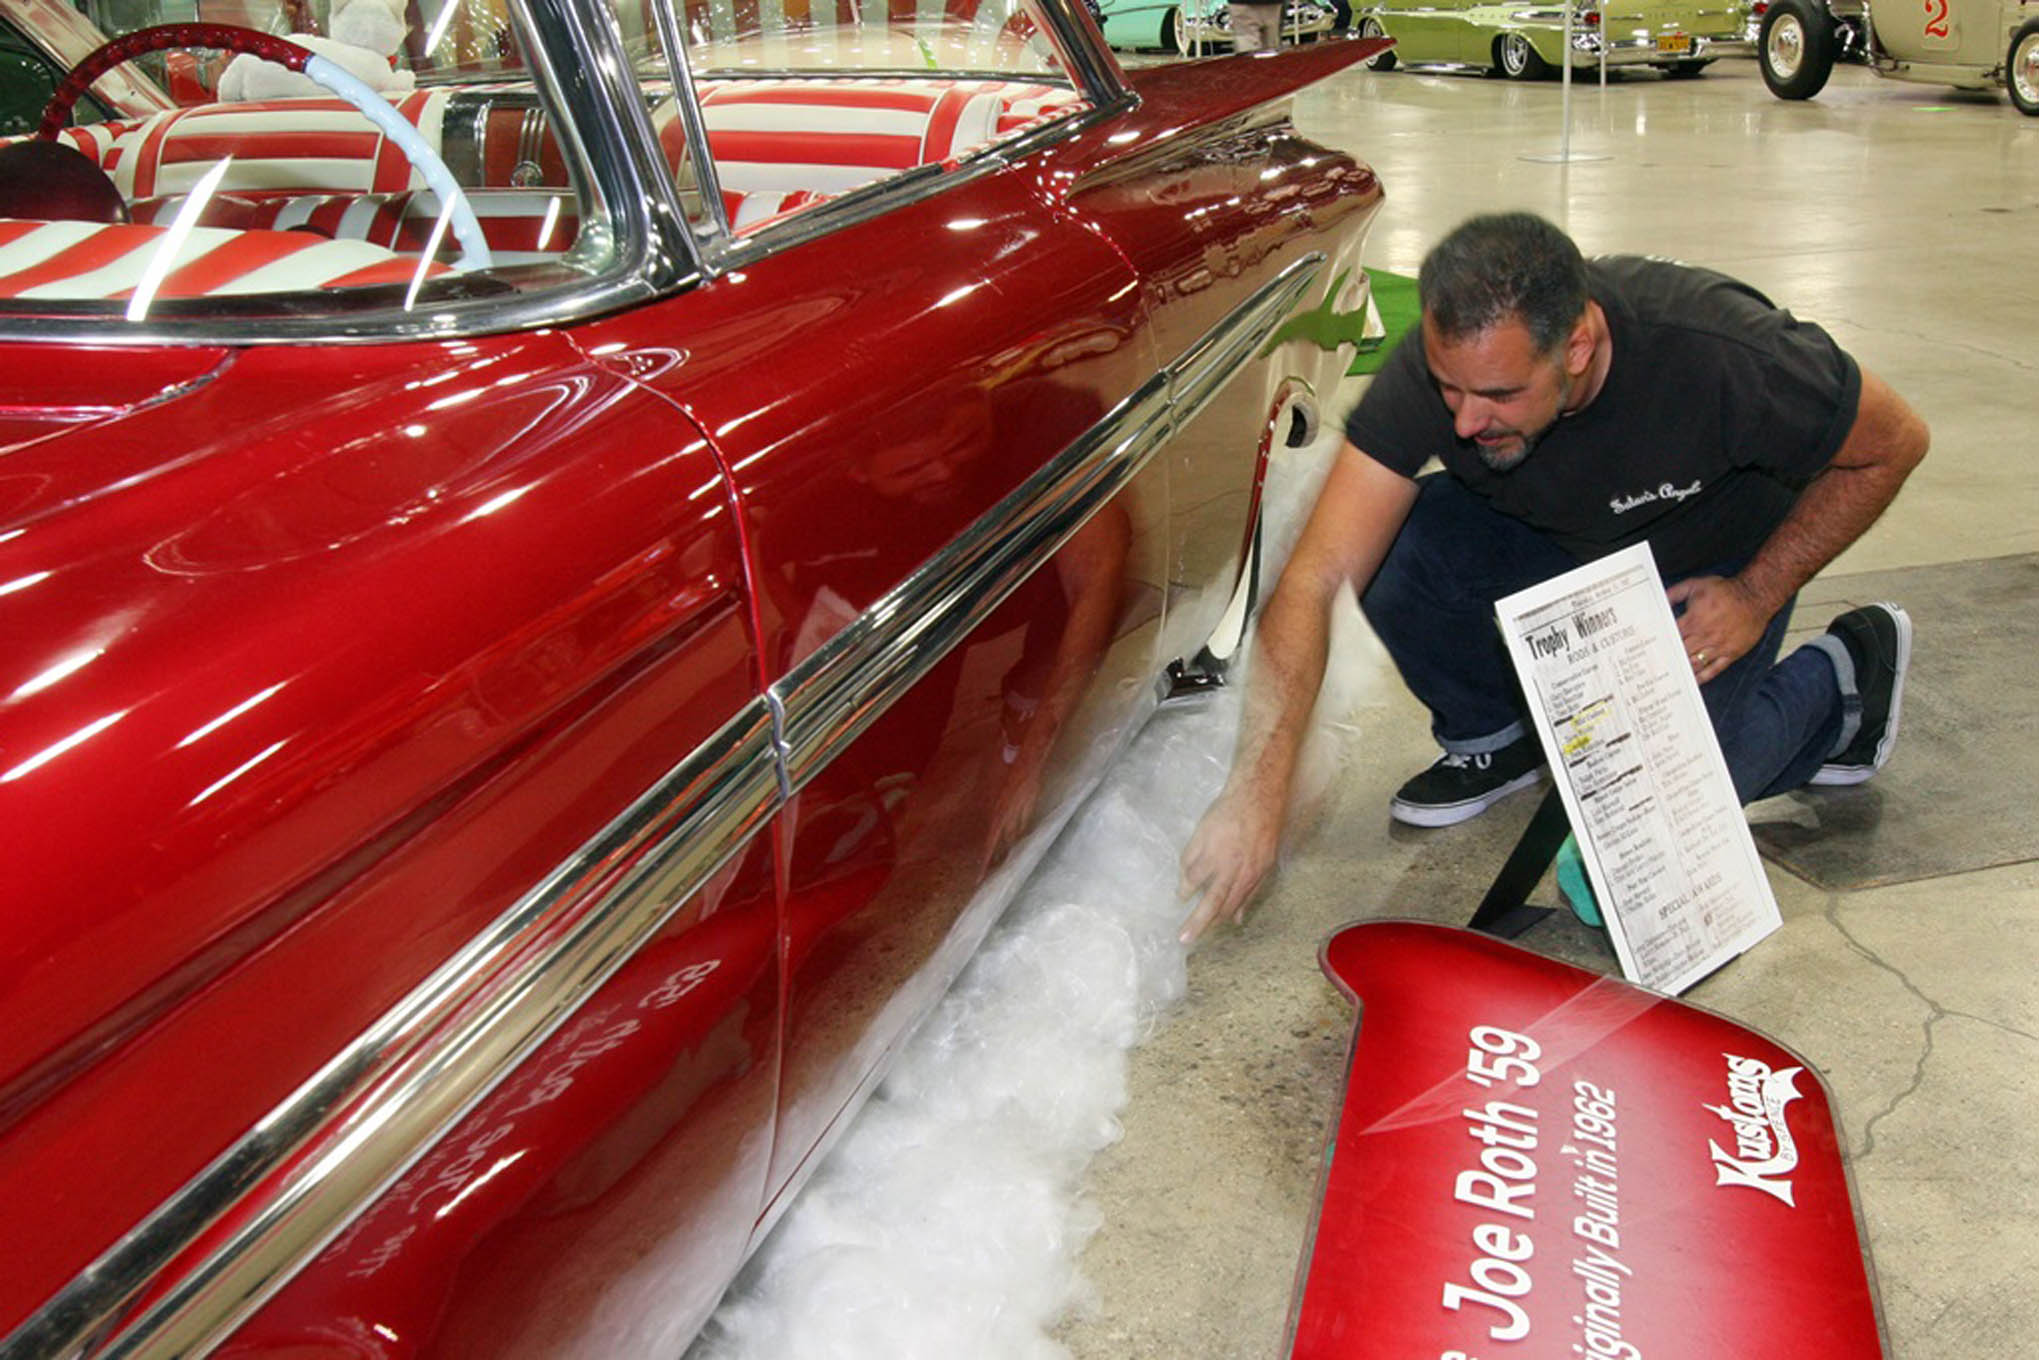 Here's Marcus Edell's 1959 Impala historic custom show car. It was originally built by Joe Roth in Wisconsin in the early '60s, then resurrected a few years later. Today, with help from Jeff Spence at Kustoms By Spence, it is preserved in its early '60s form.